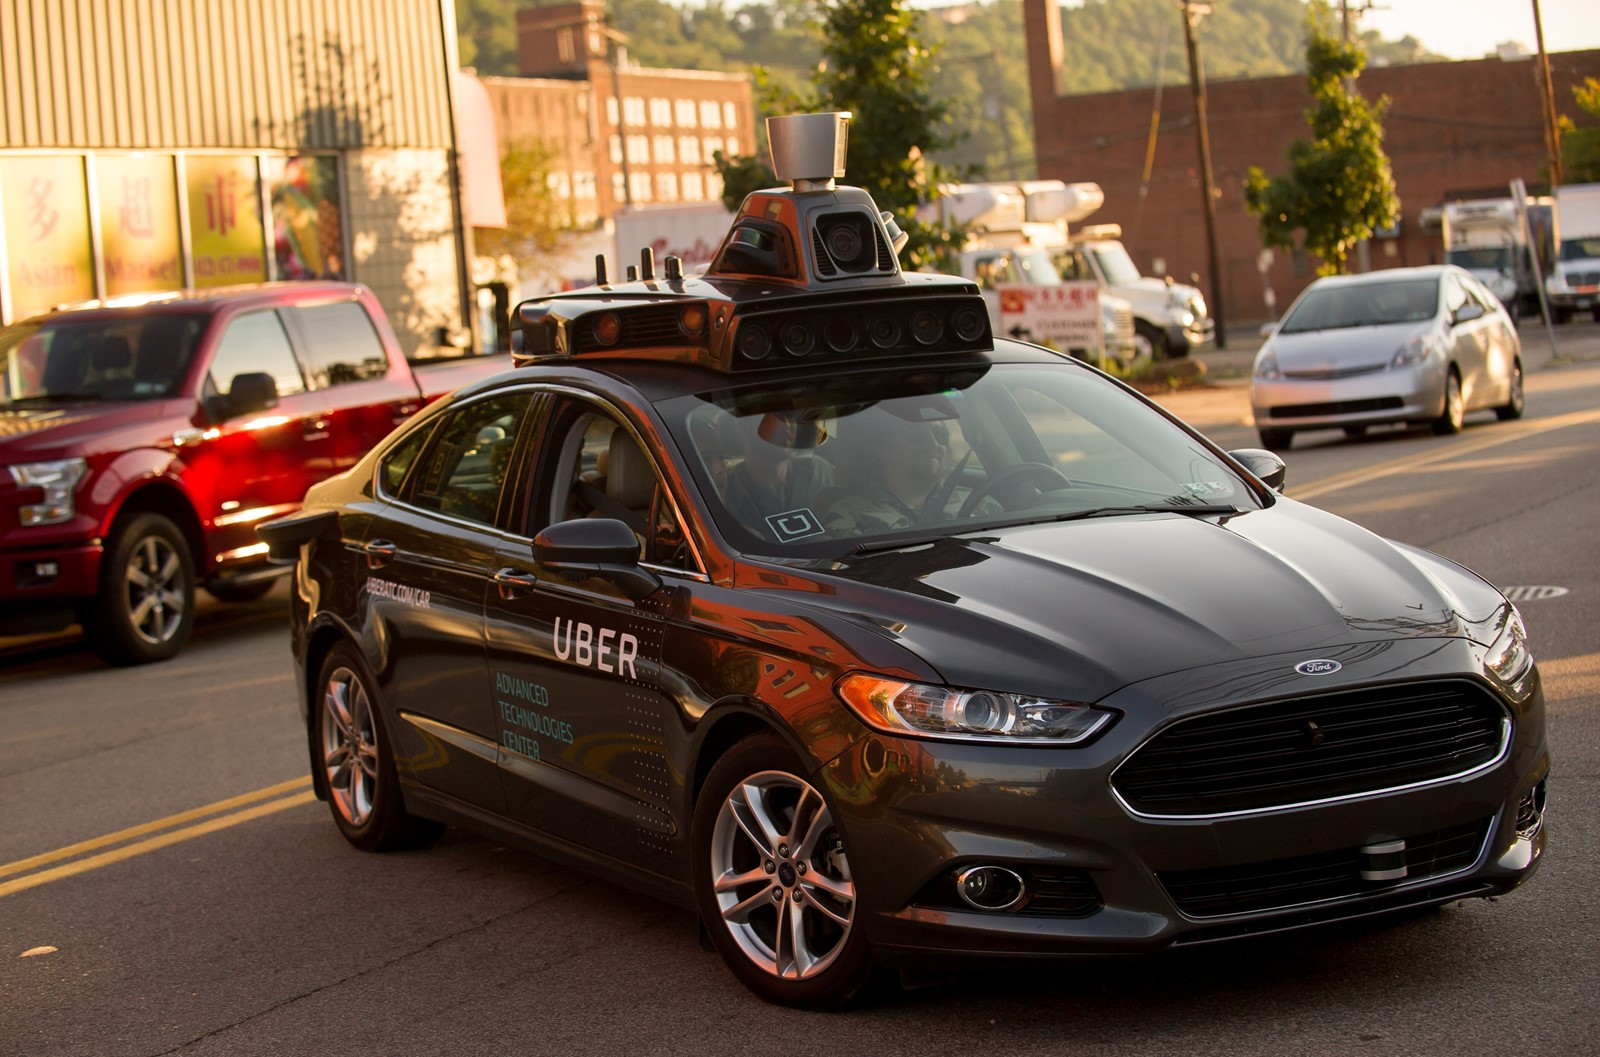 An Uber Ford Fusion driverless sedan travels through Pittsburgh in 2016. Critics assert that today's artificial intelligence simply cannot deliver self-driving vehicles as originally envisioned by researchers. — Photograph: Jeff Swensen/Getty Images.